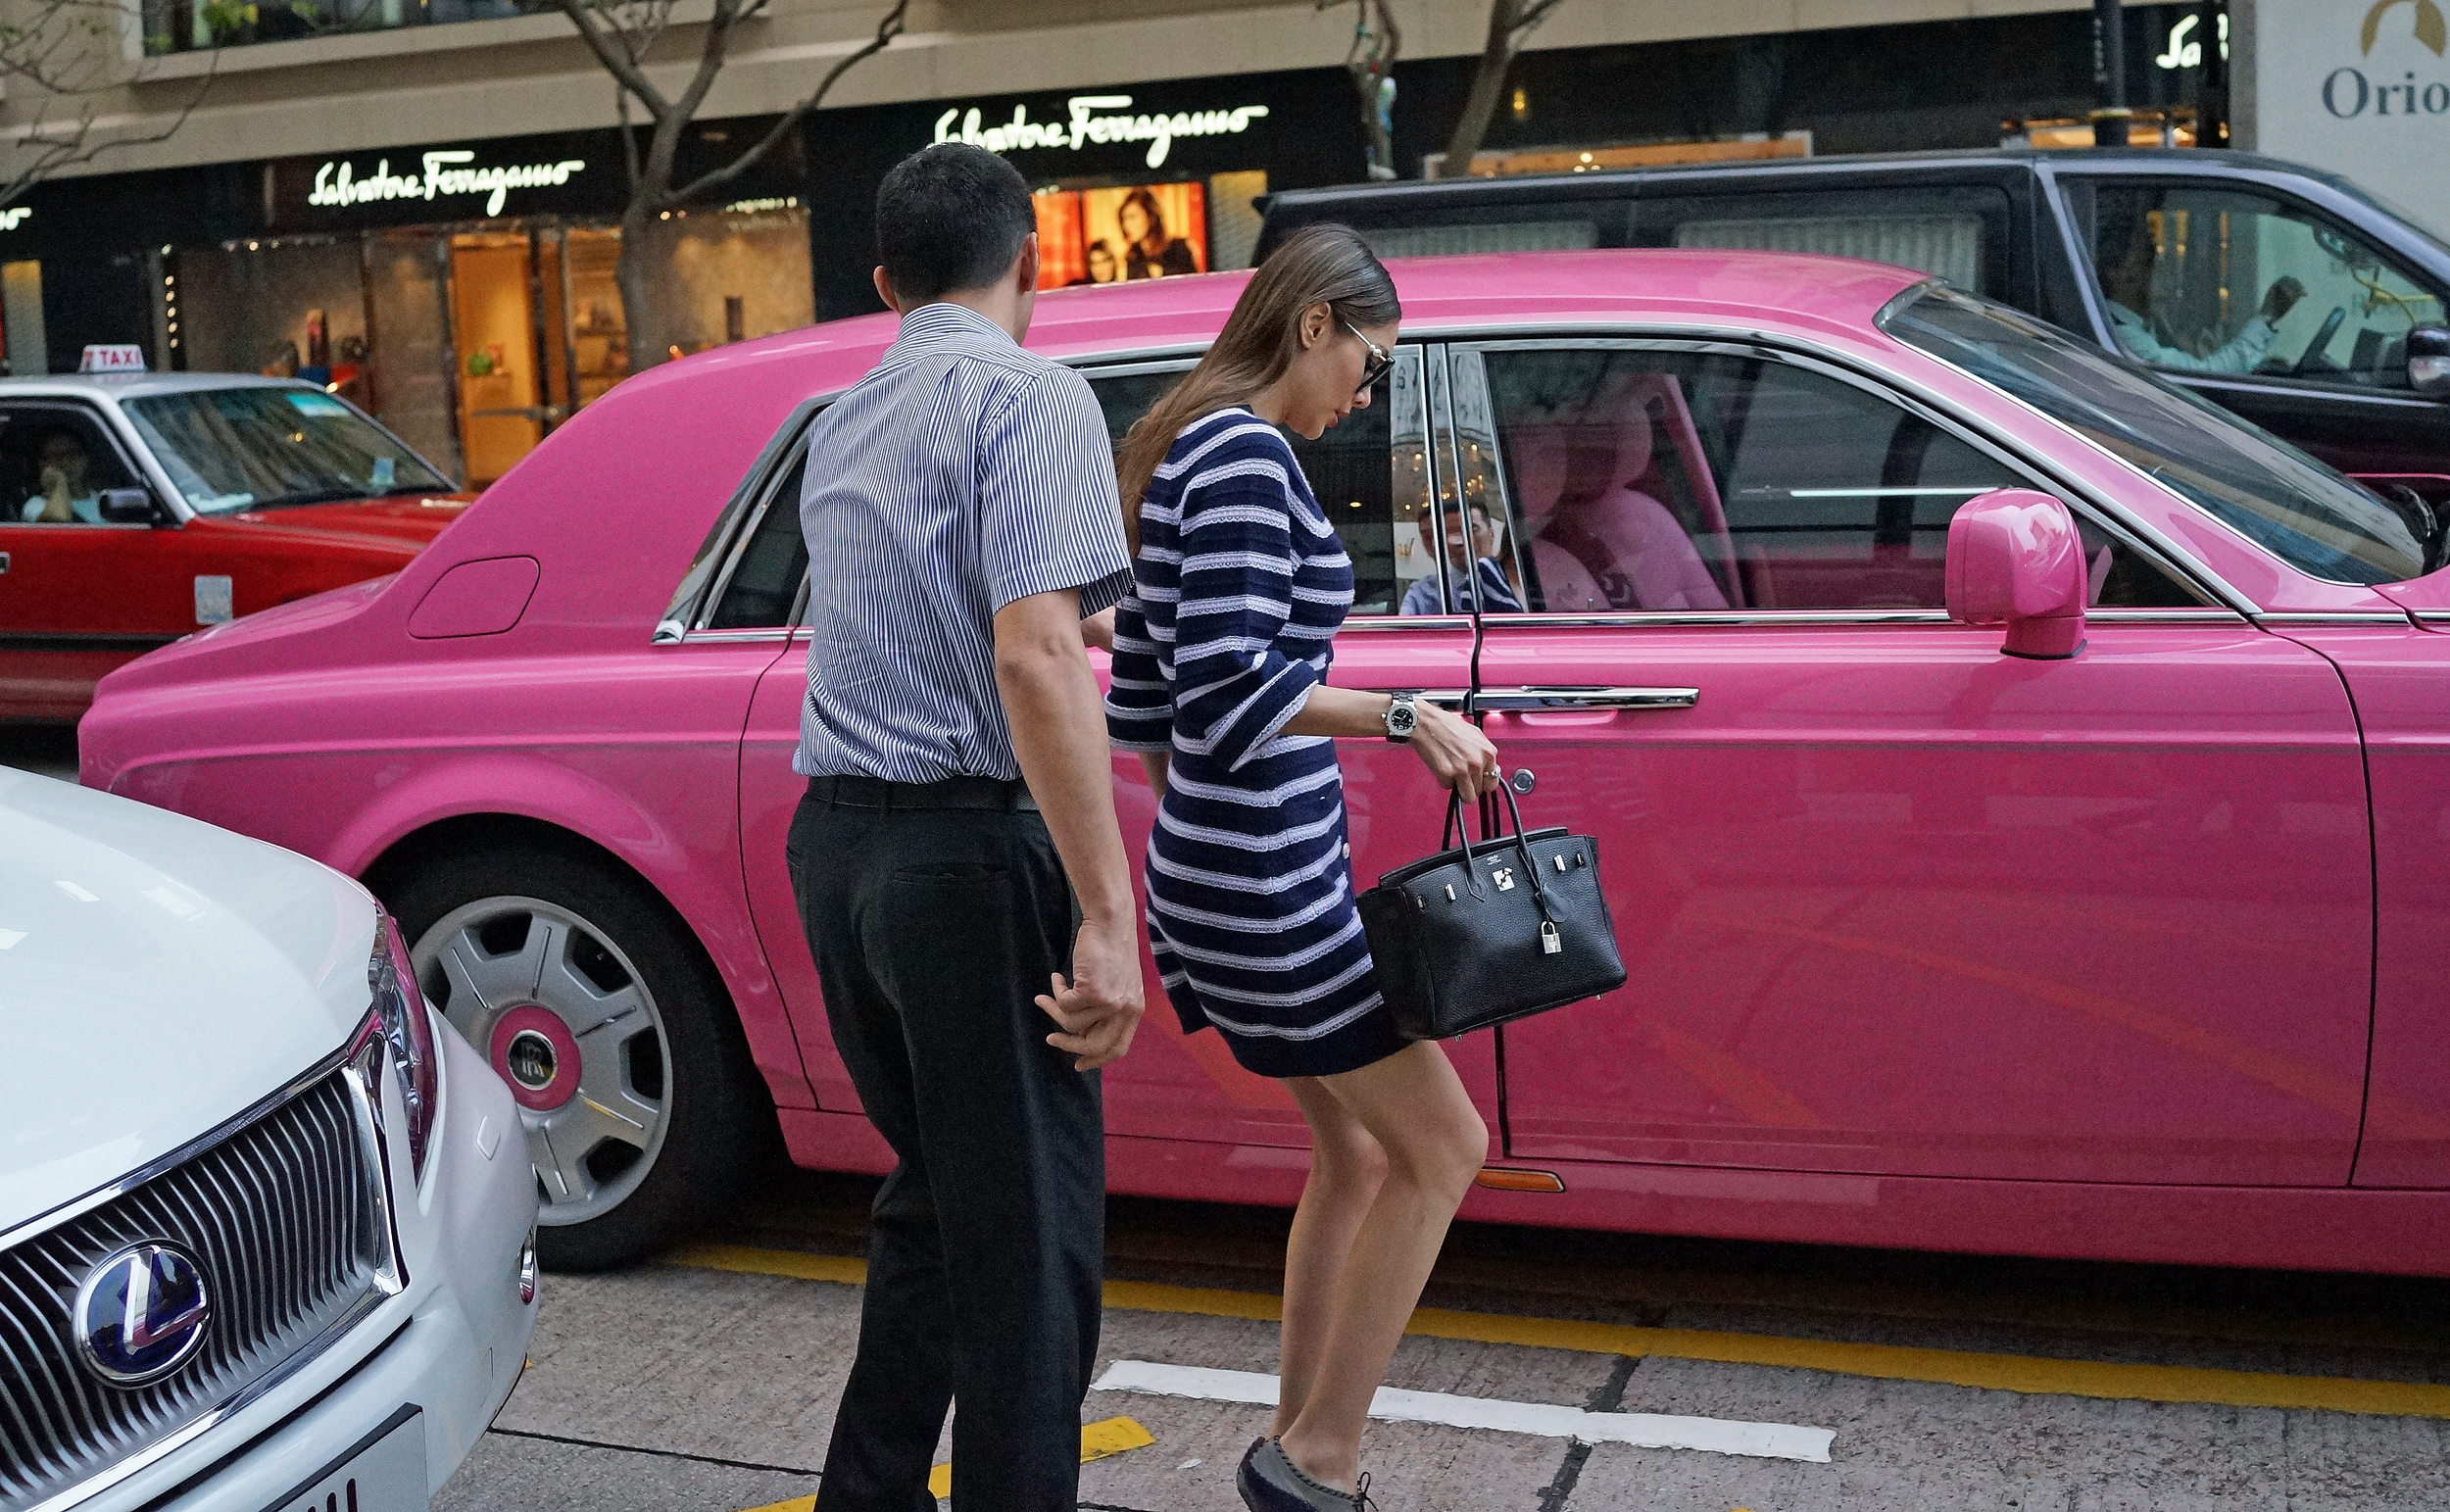 Deborah is rather magnificent isn't she...... she is the owner of this somewhat garish pink Rolls Royce Phantom (shades of Lady Penelope from the Thunderbirds) - she has of course got the frightfully daring number plate which simply says DEBORAH.